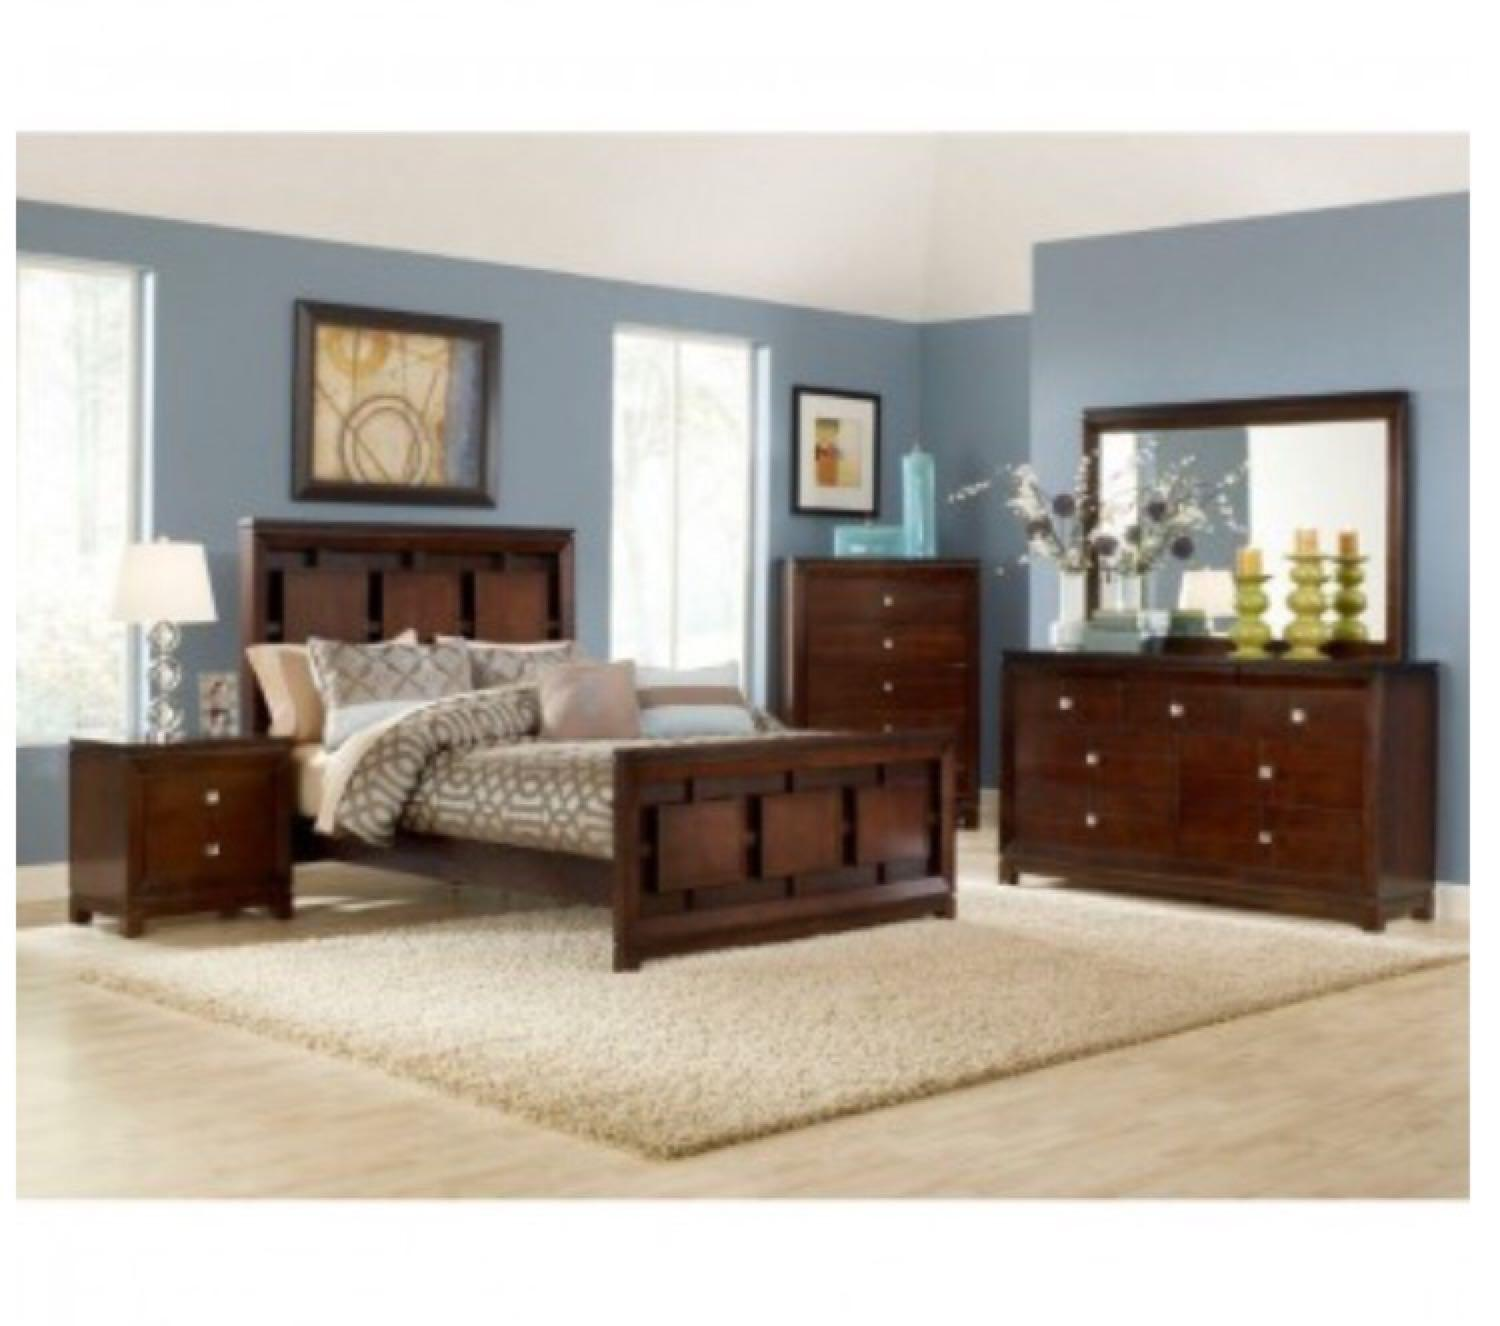 Best Brand New Bedroom Set Delivered Yesterday Nothing Wrong With It Too Dark For My